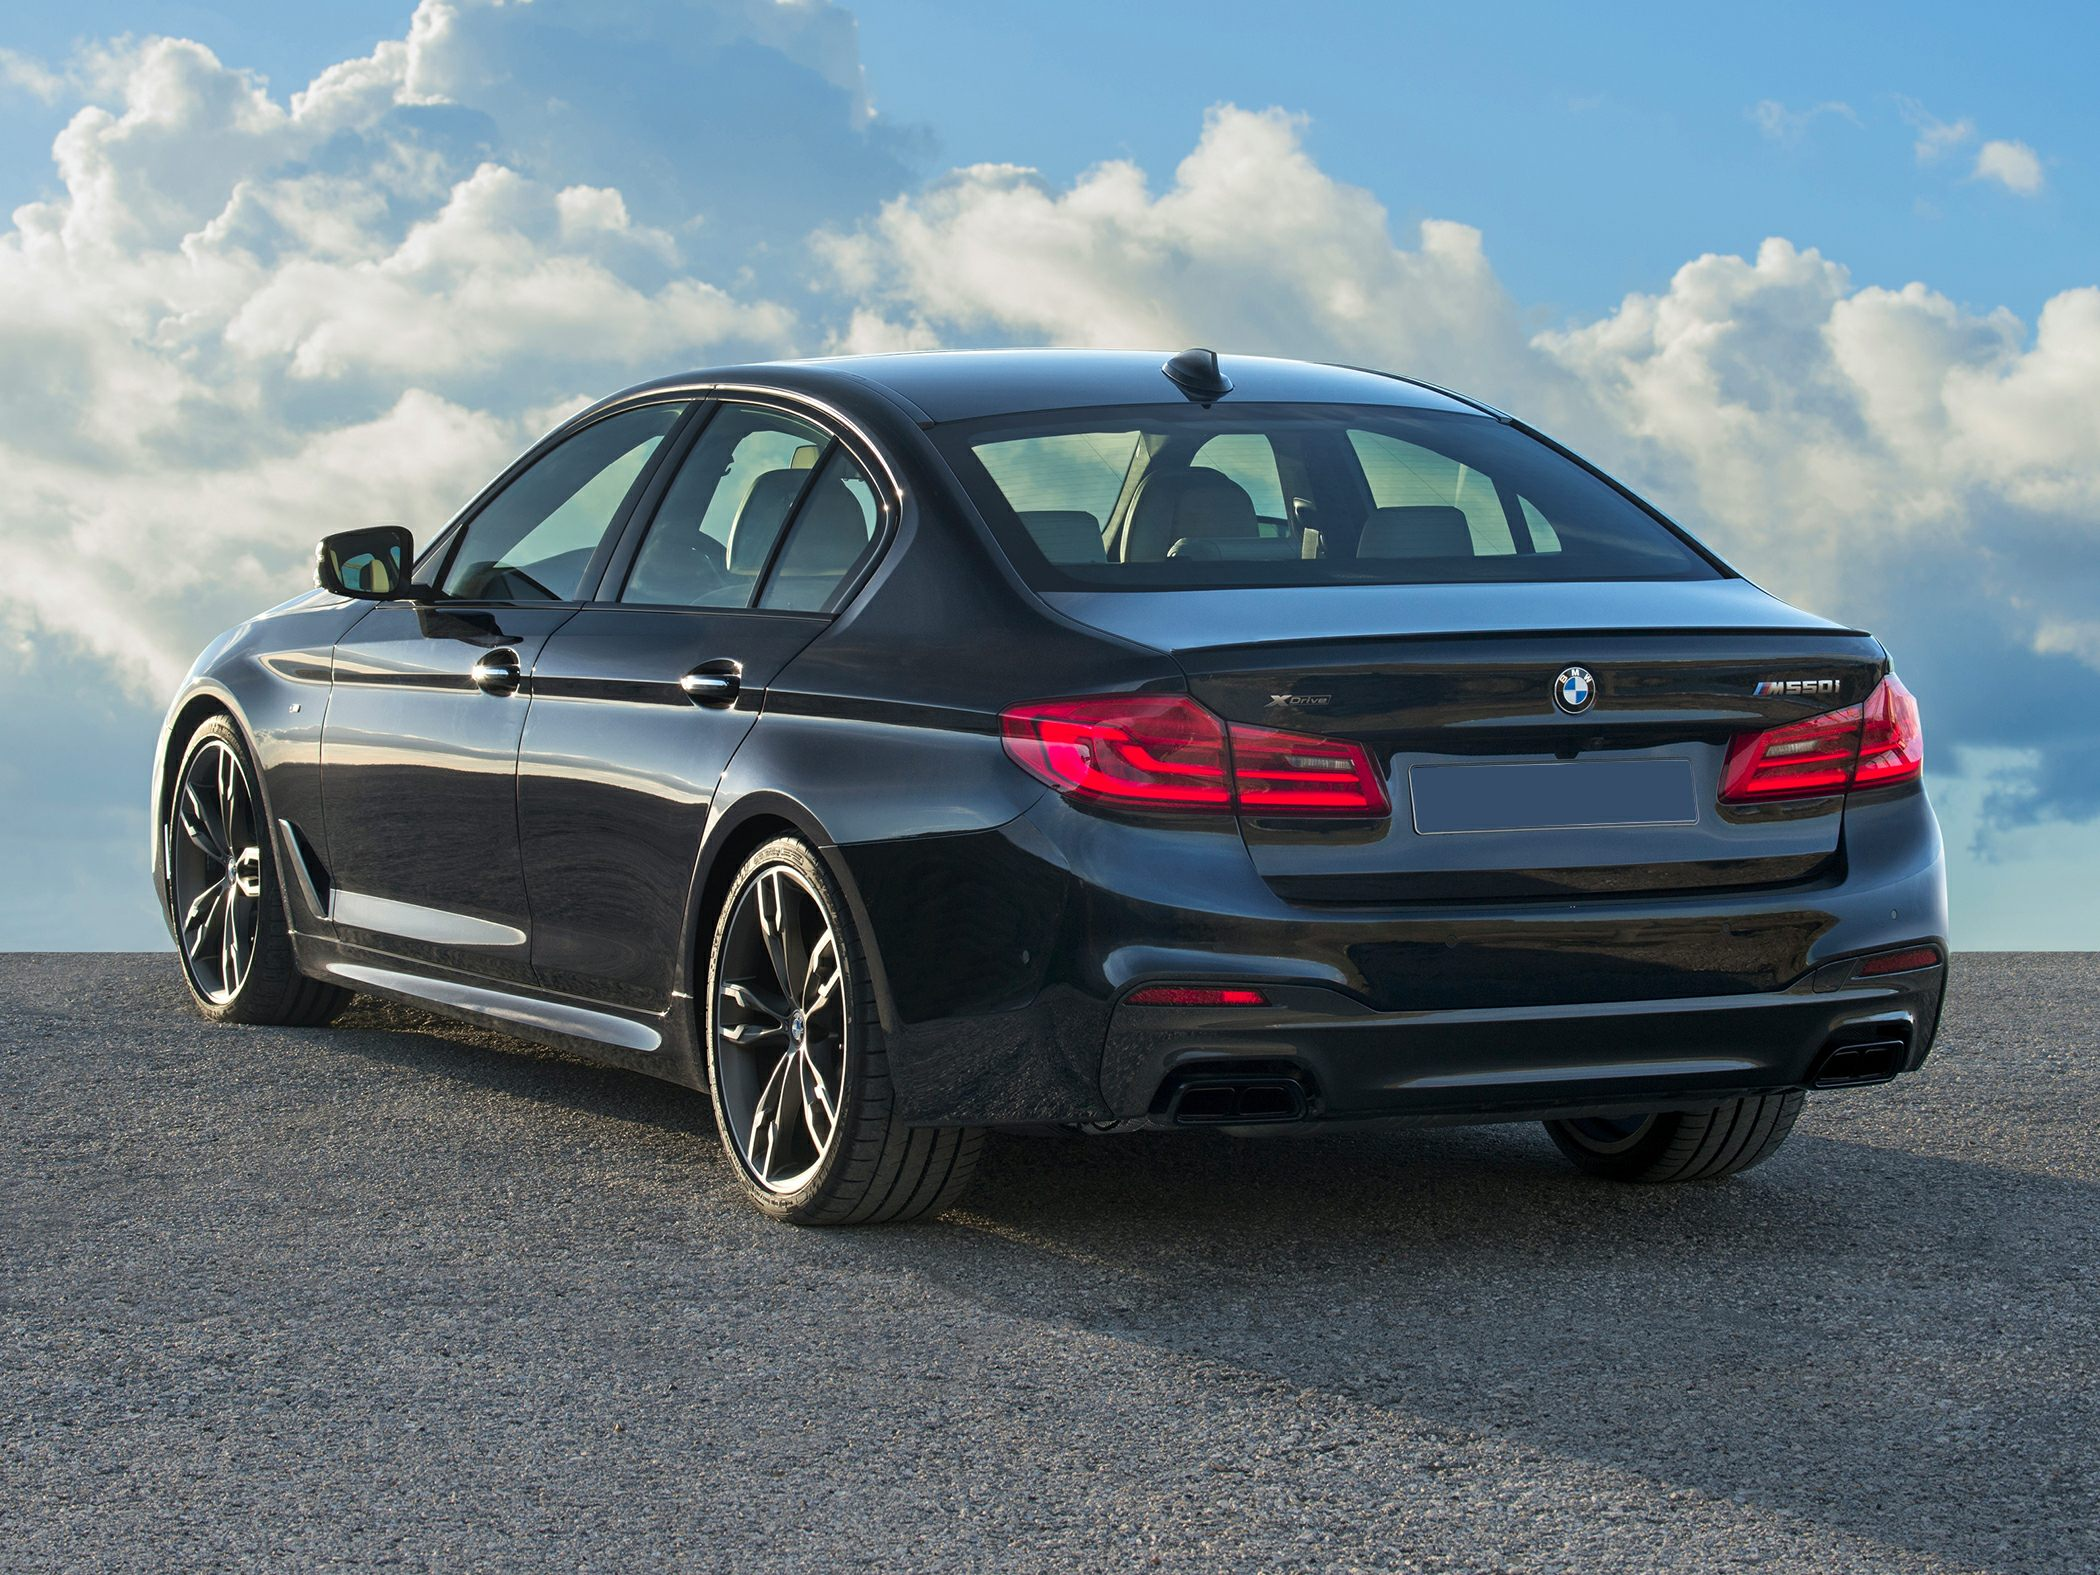 2018 Bmw 5 Series Deals Prices Incentives Leases Overview